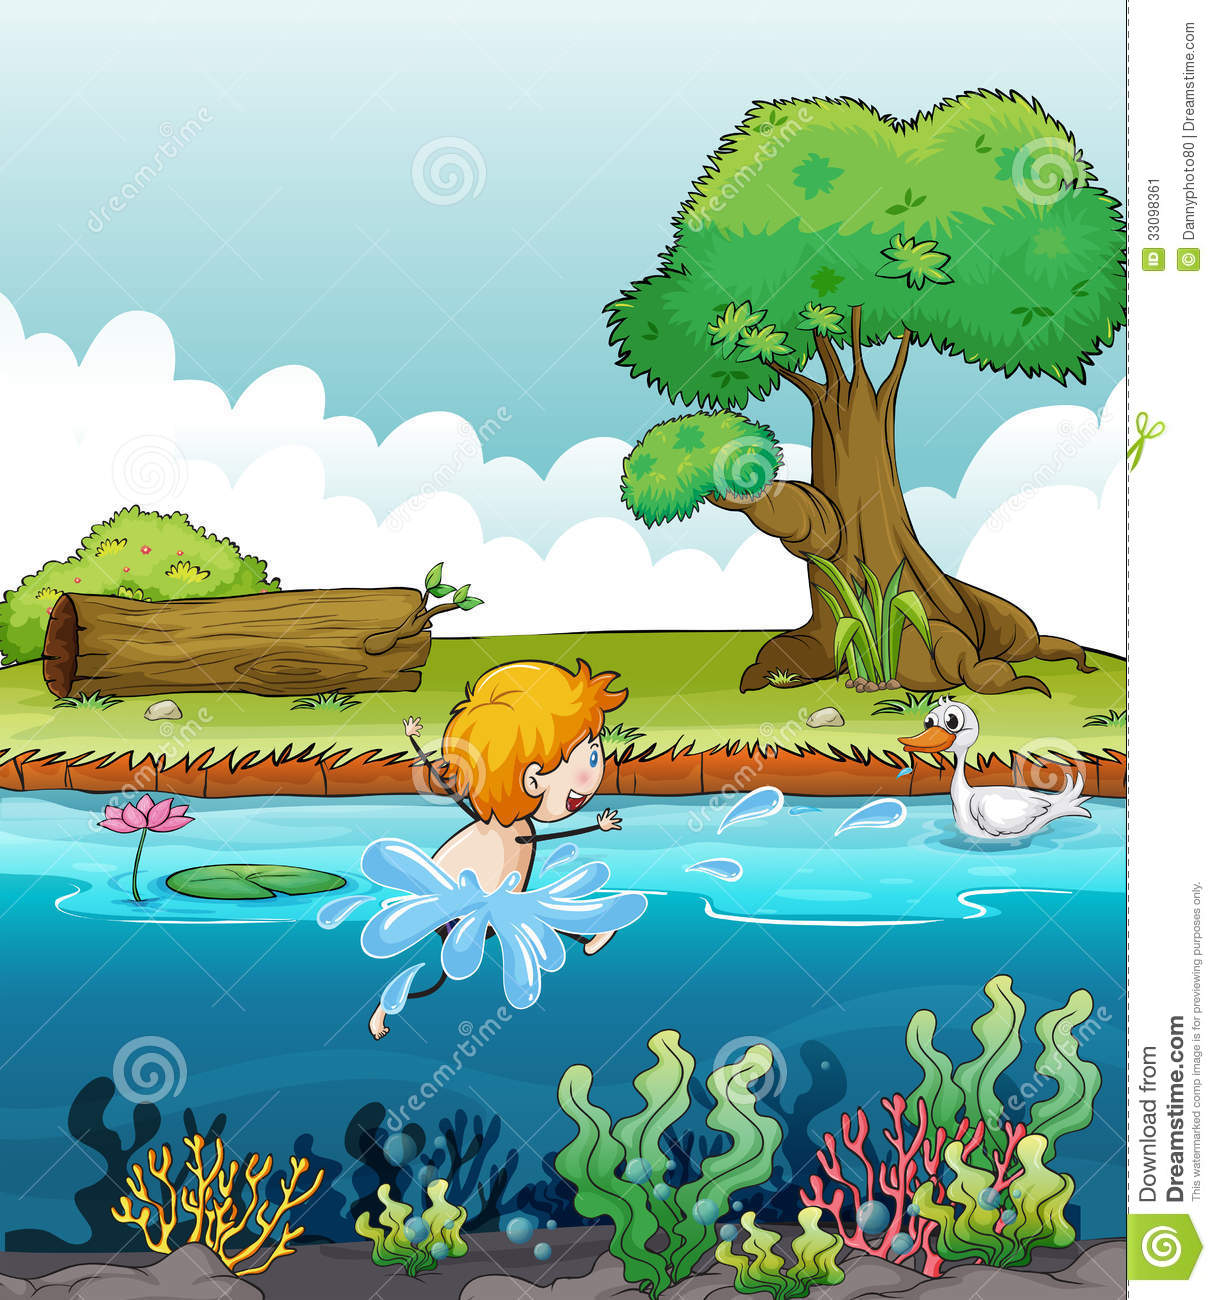 A Boy Swimming With A Duck In The River Stock Vector ...